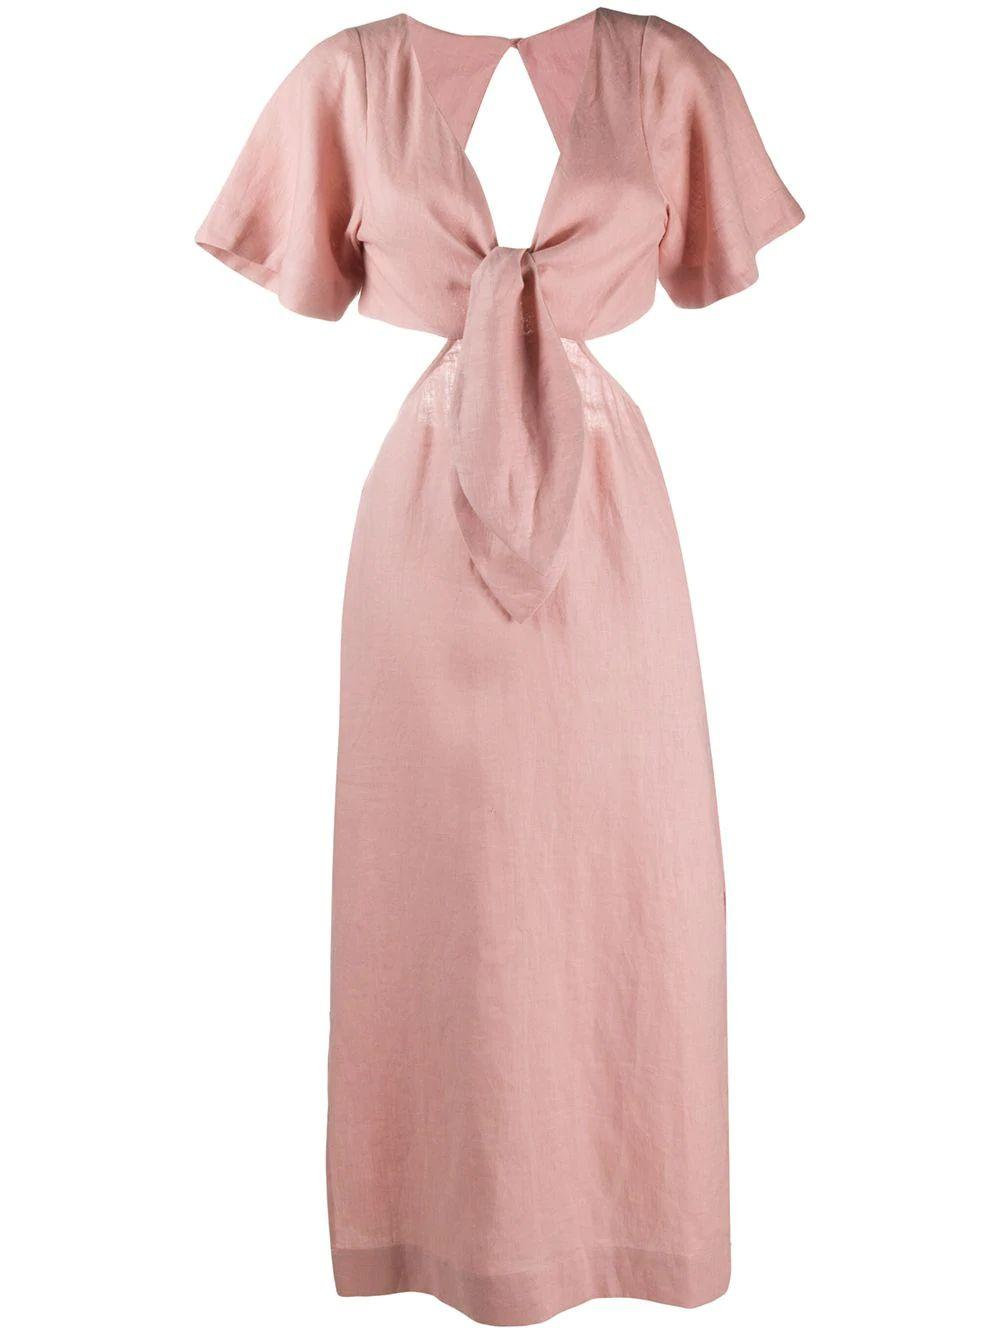 MAYA Short Sleeve Linen Midi Dress With Front Tie